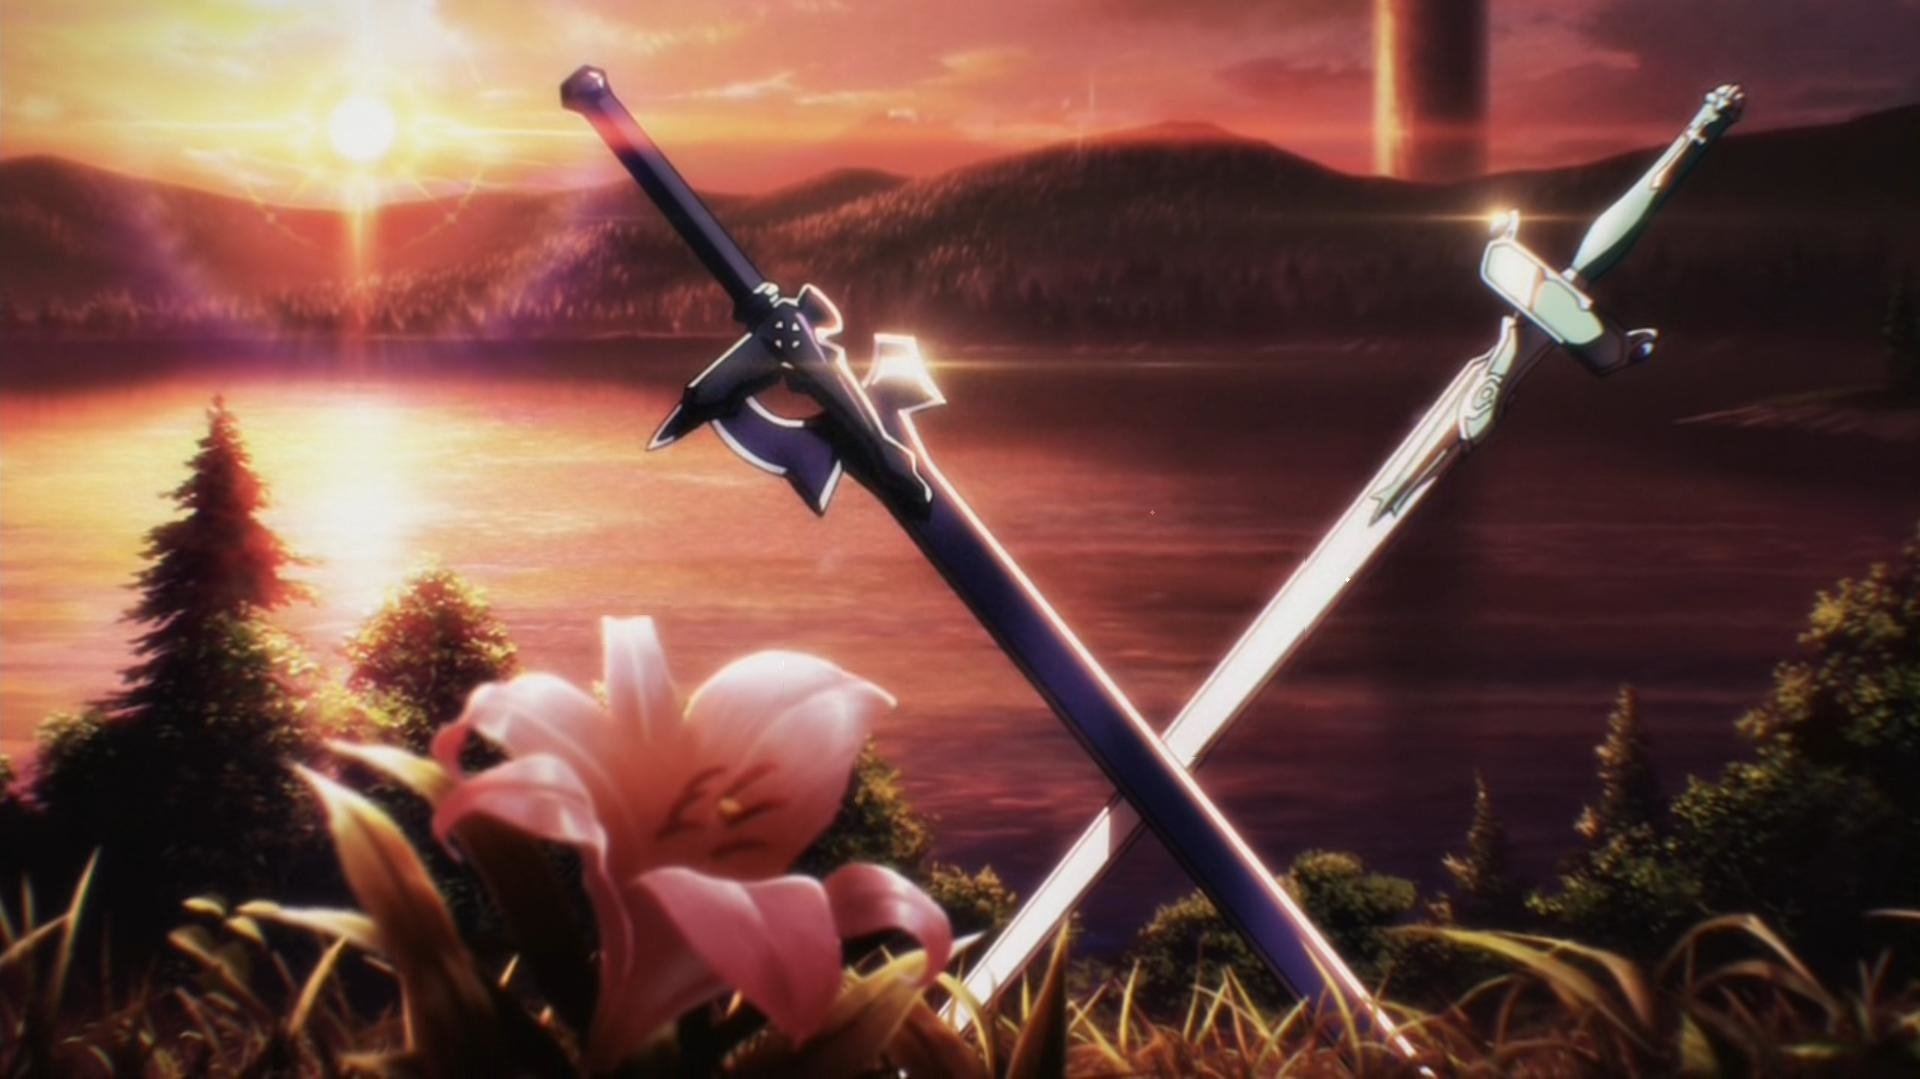 2460 Sword Art Online Hd Wallpapers Background Images